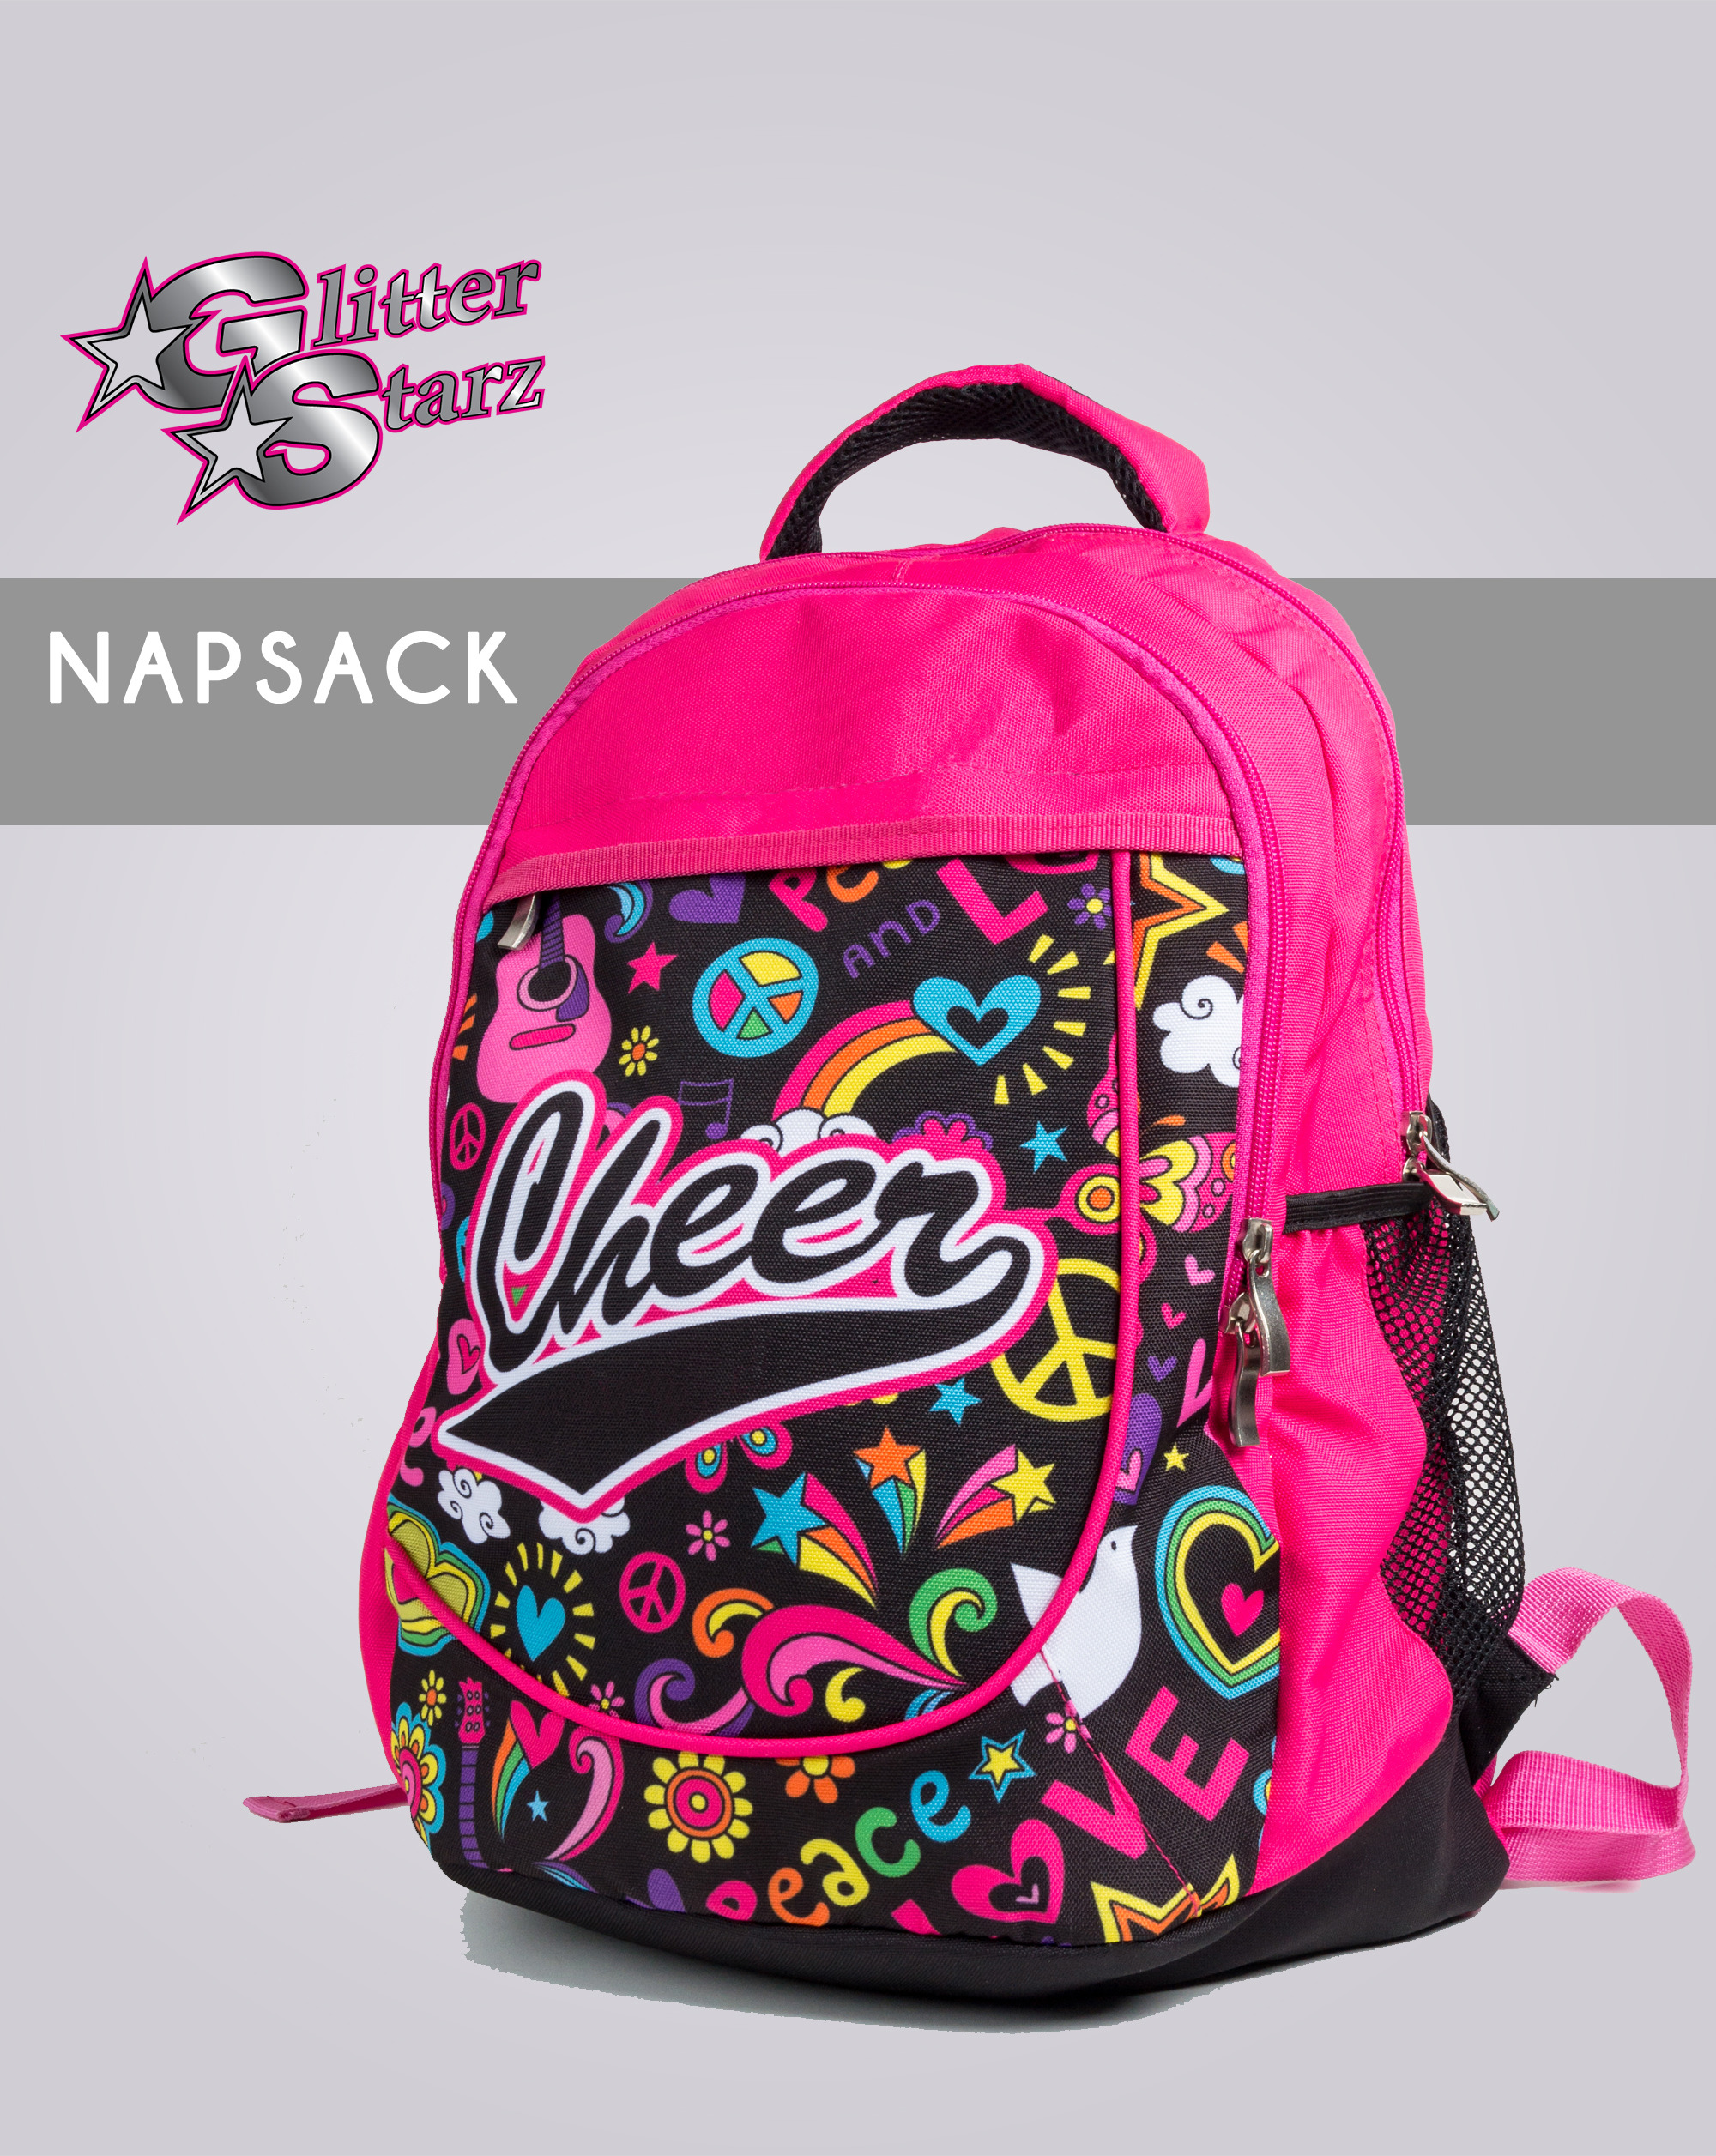 glitterstarz custom napsack cheer bag bookbag backpack pink